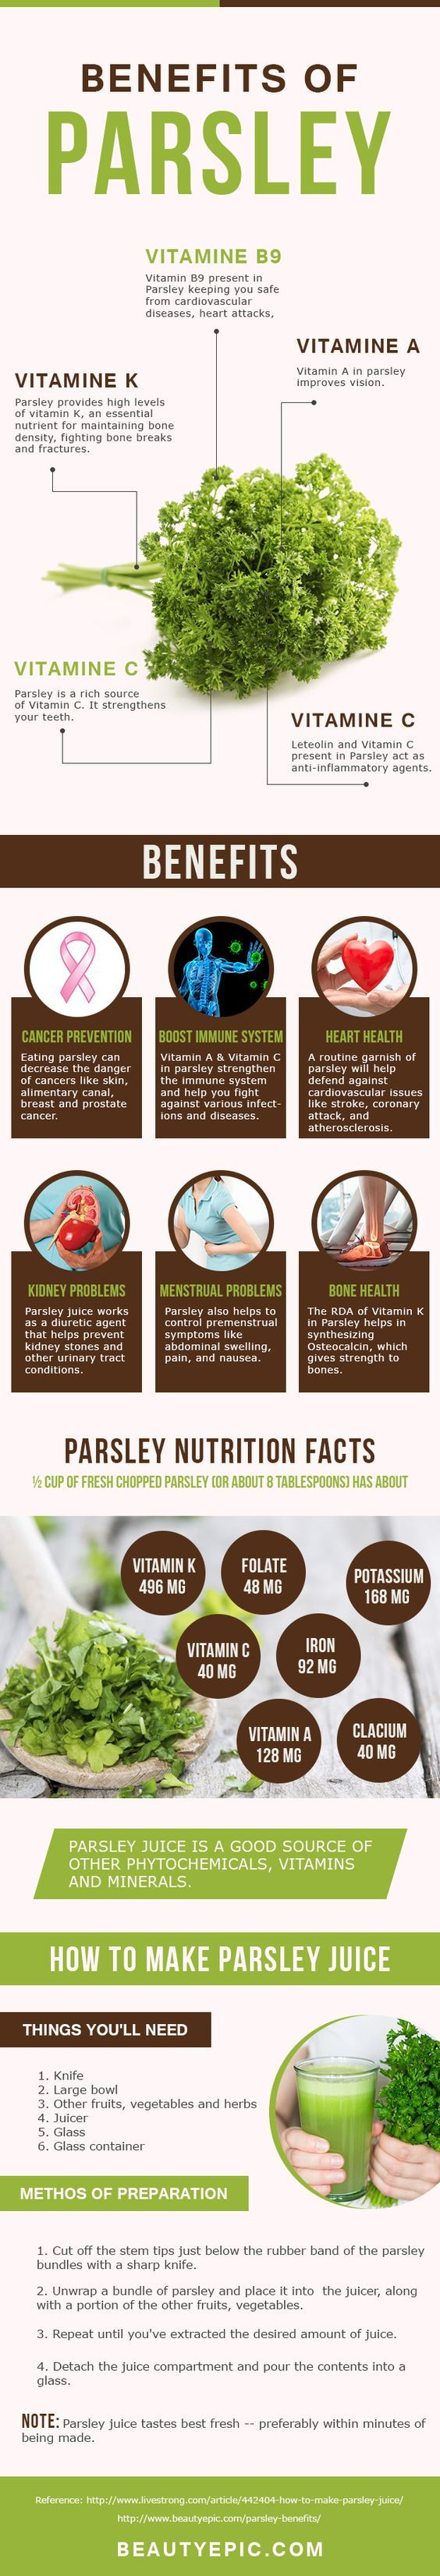 Benefits of Parsley:Parsley is an excellent of vitamin K and vitamin C as well as a good source of vitamin A, folate and iron